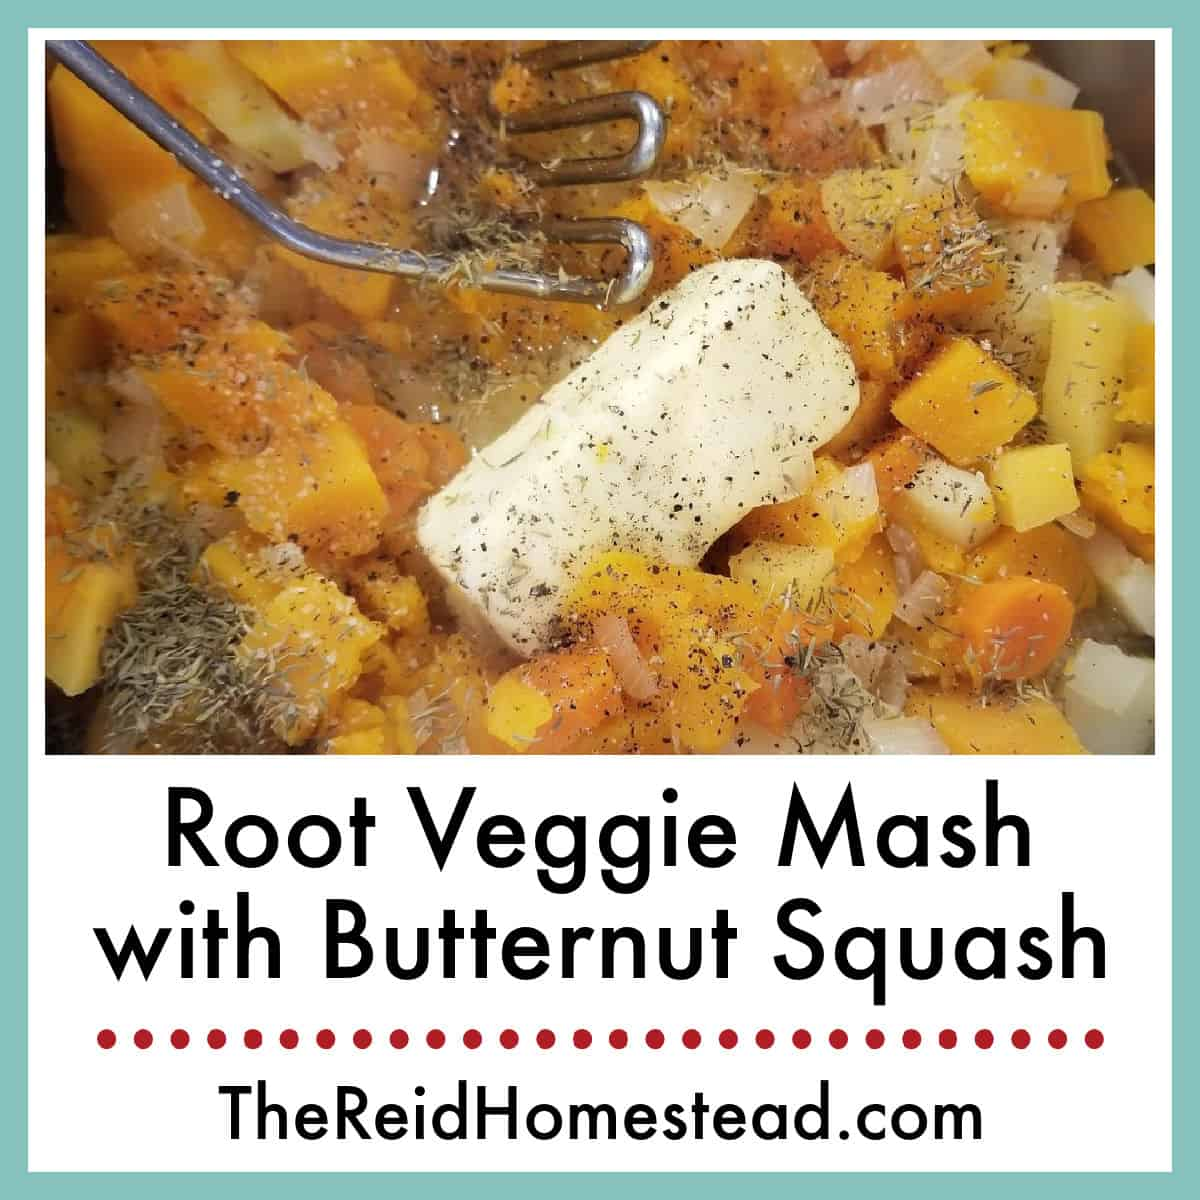 Root Veggie Mash with Butternut Squash Recipe